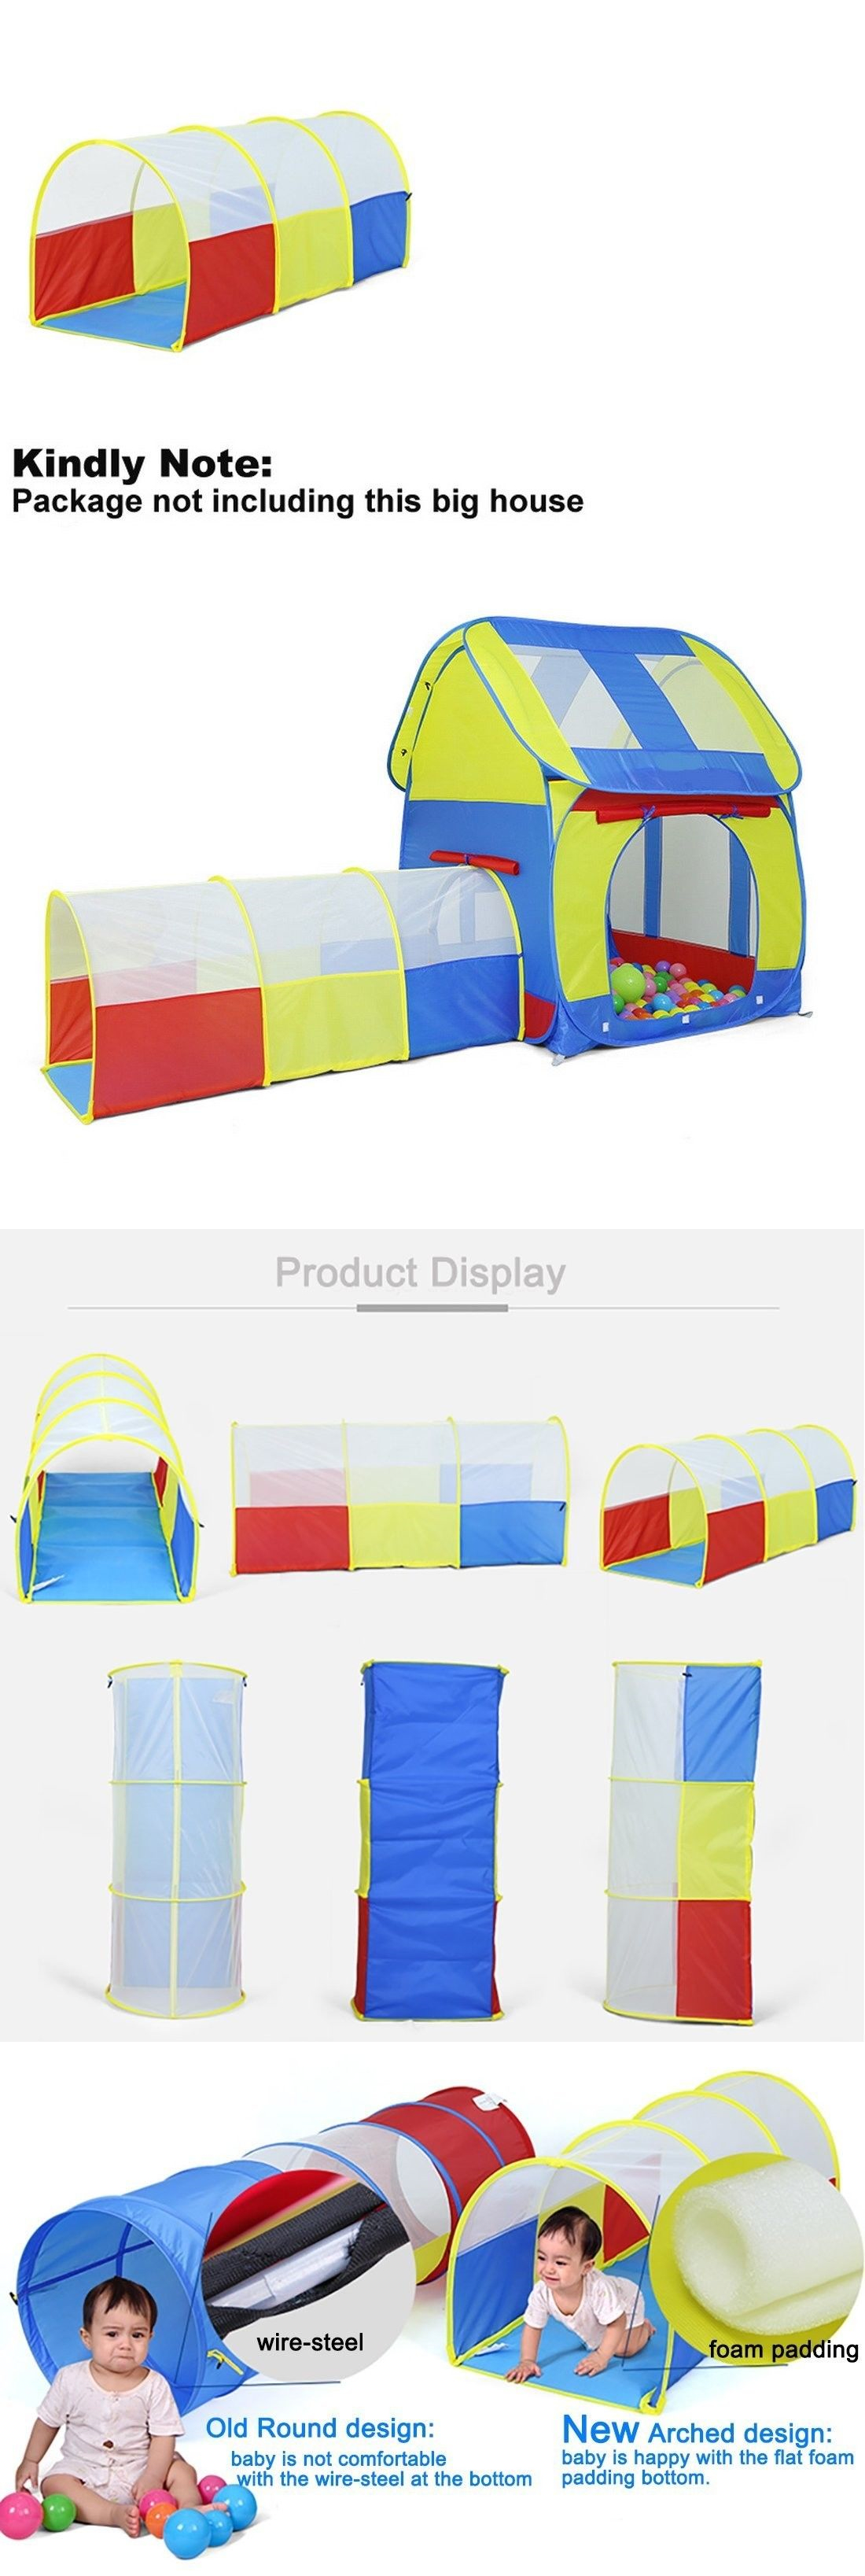 Tunnels 145998 Truedays Arched Play Tunnel Toy Tent Child Kids Discovery Tube Play Tent  sc 1 st  Pinterest & Tunnels 145998: Truedays Arched Play Tunnel Toy Tent Child Kids ...